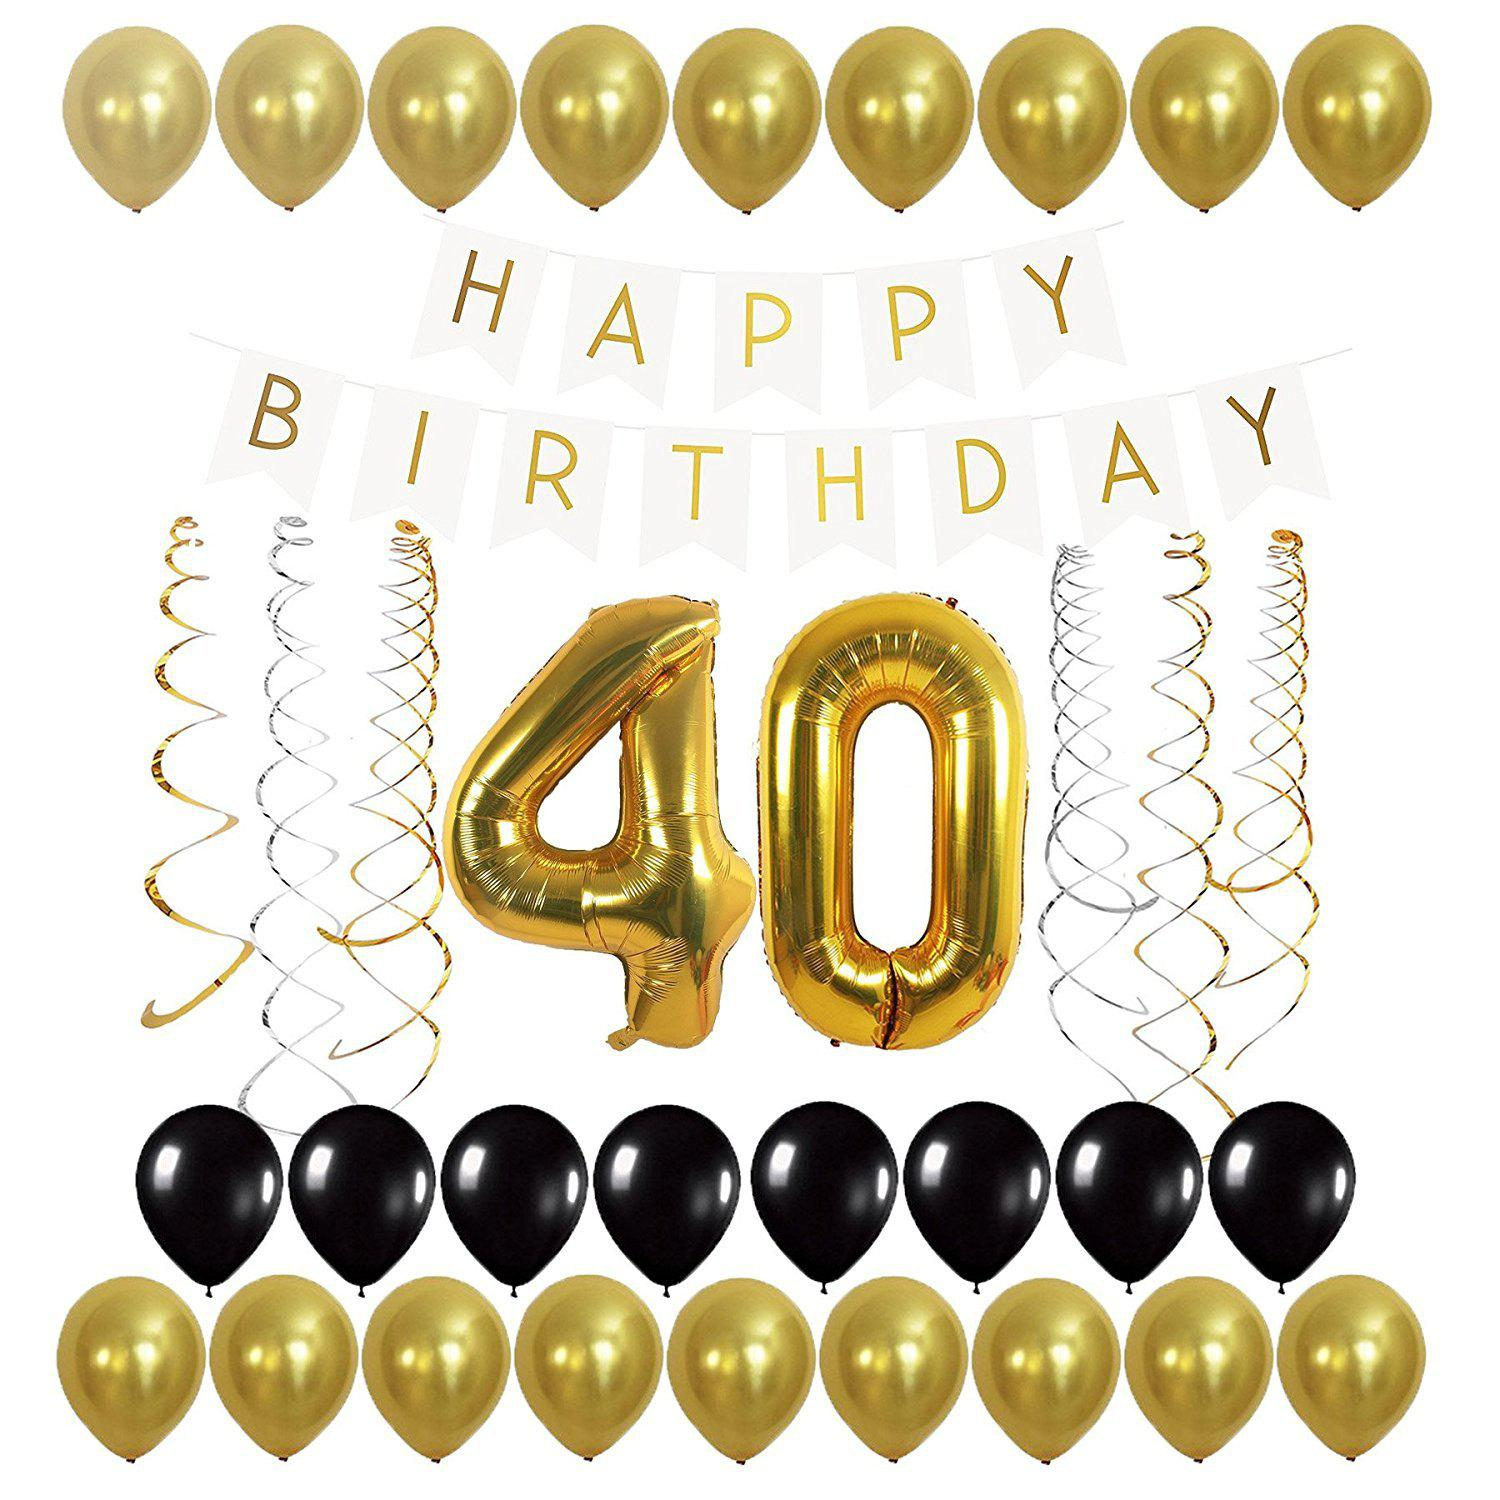 40th Balloons Happy Birthday Banner and Streamers Set for 40th Birthday decoration - BLACK / GOLD 40TH